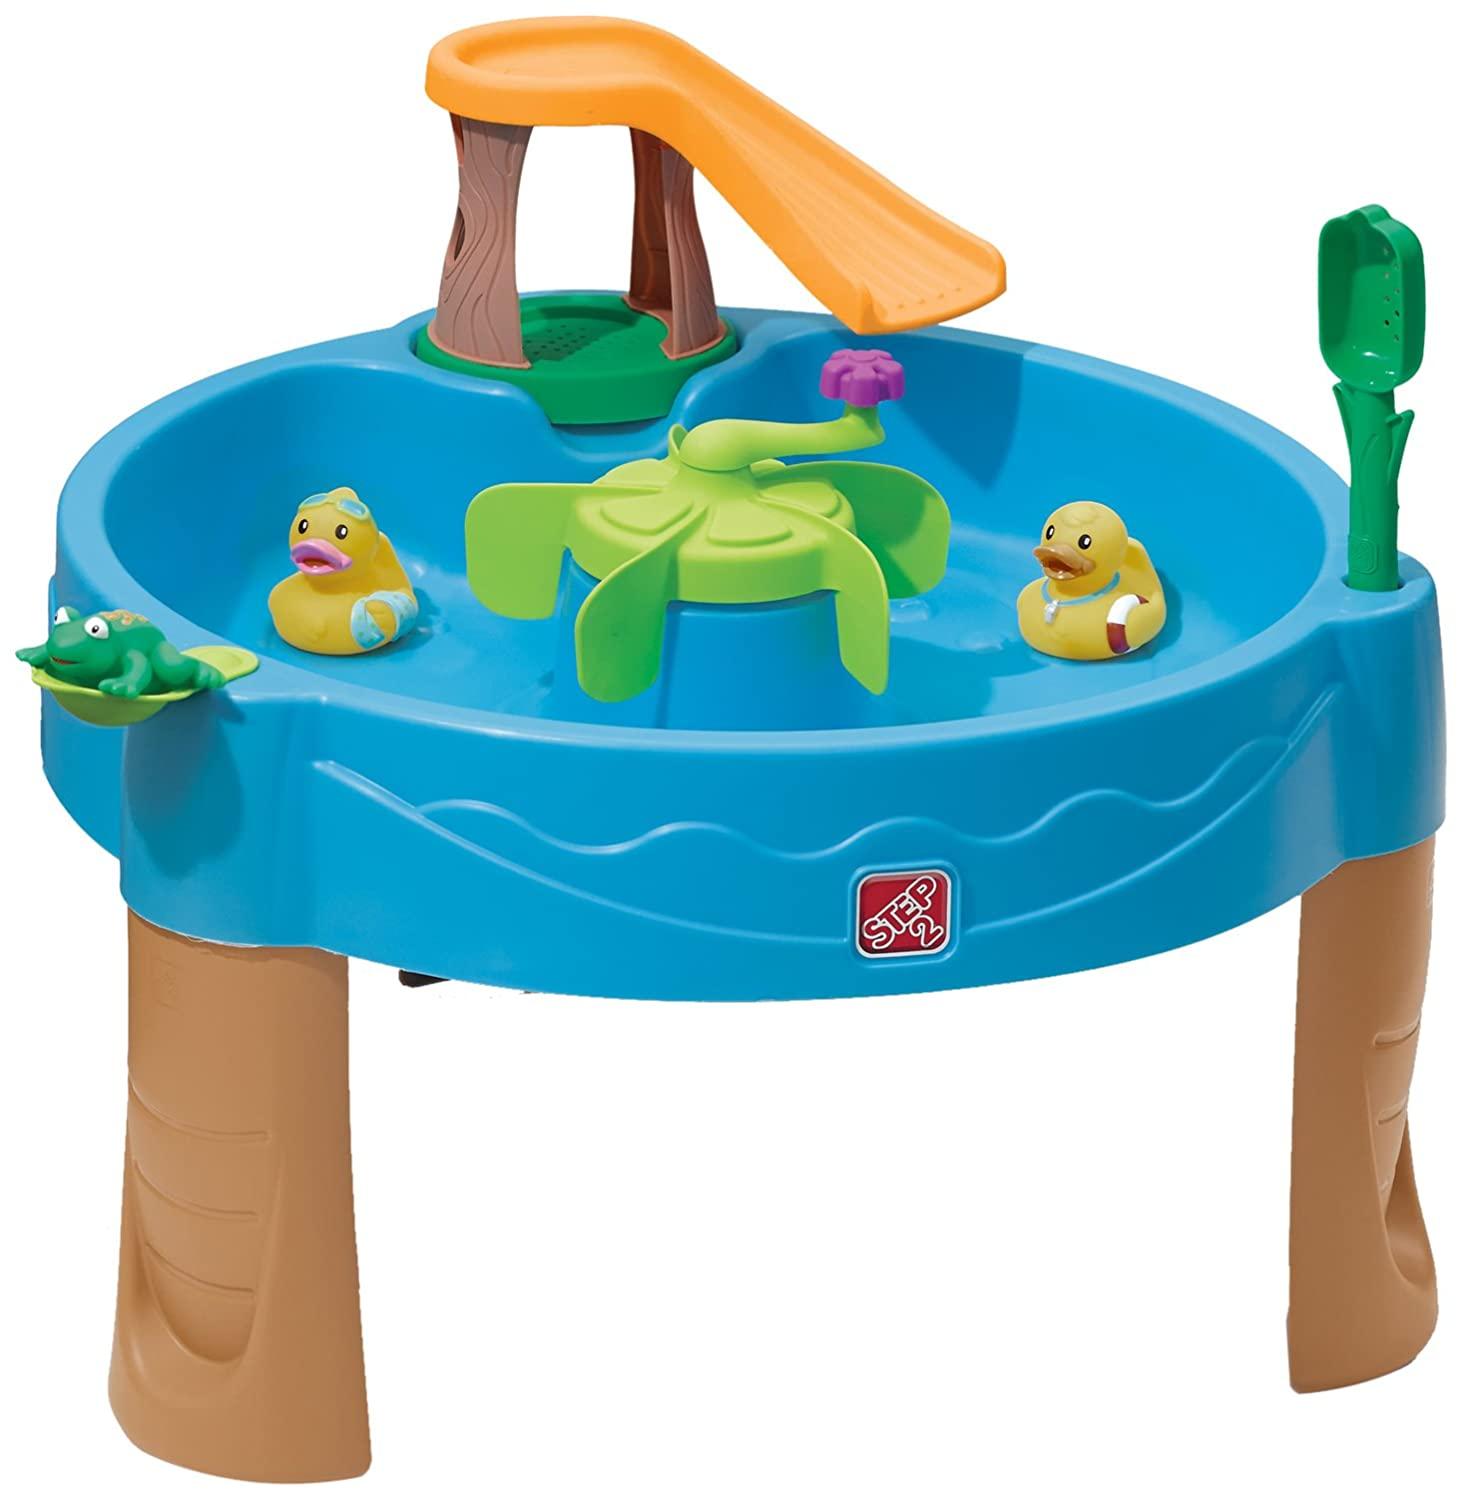 Amazon Step2 Duck Pond Water Table Toys & Games